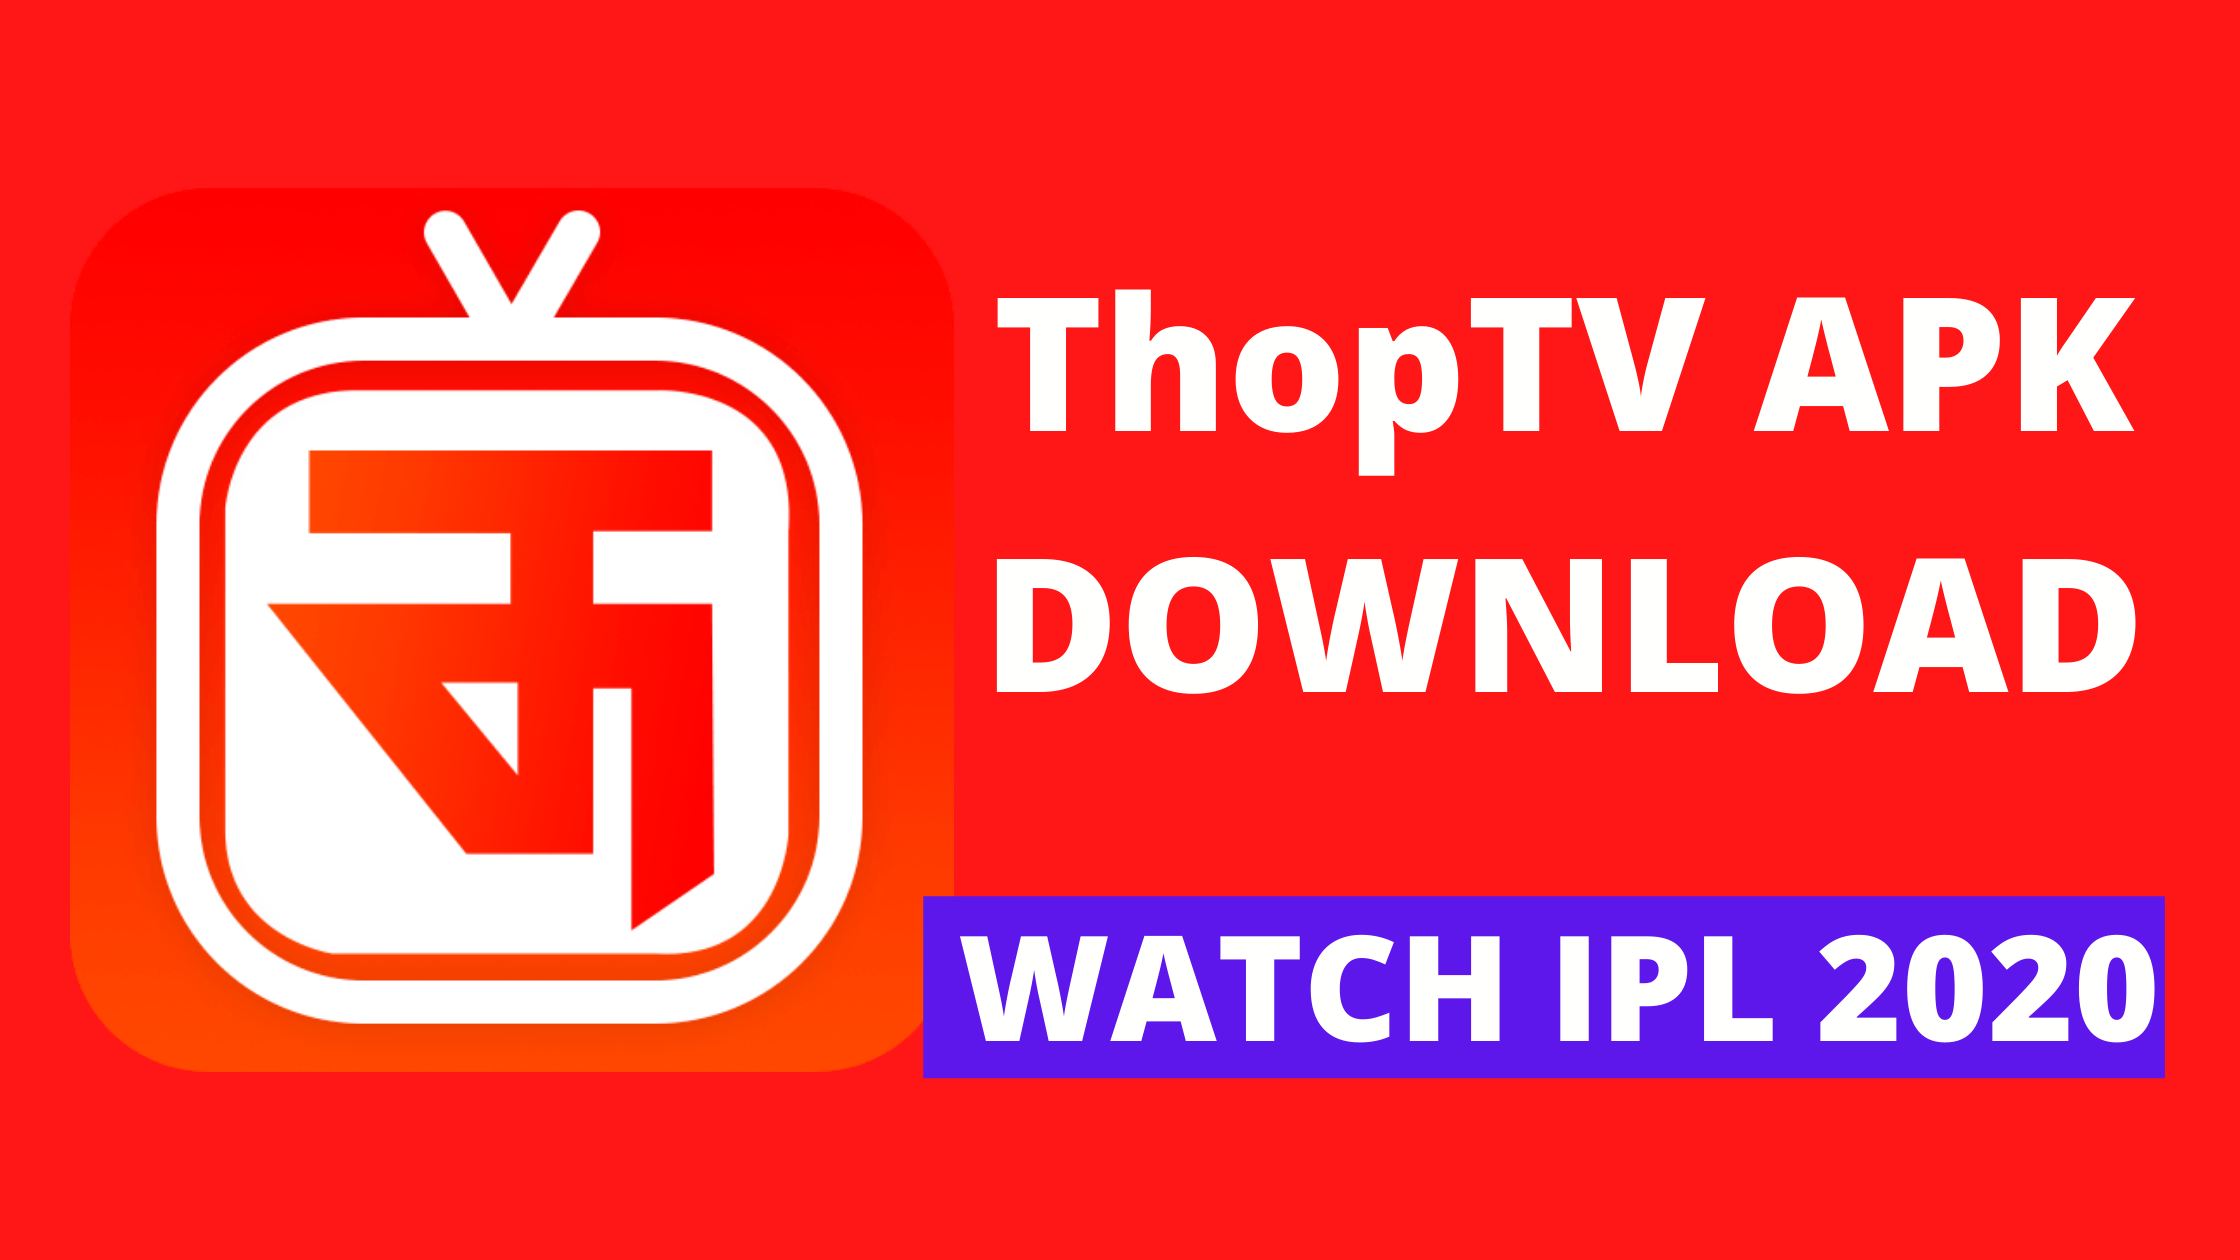 Thoptv V38 0 Apk Free Download Stream Ipl 2020 For Free By Manish Saxena Sep 2020 Medium